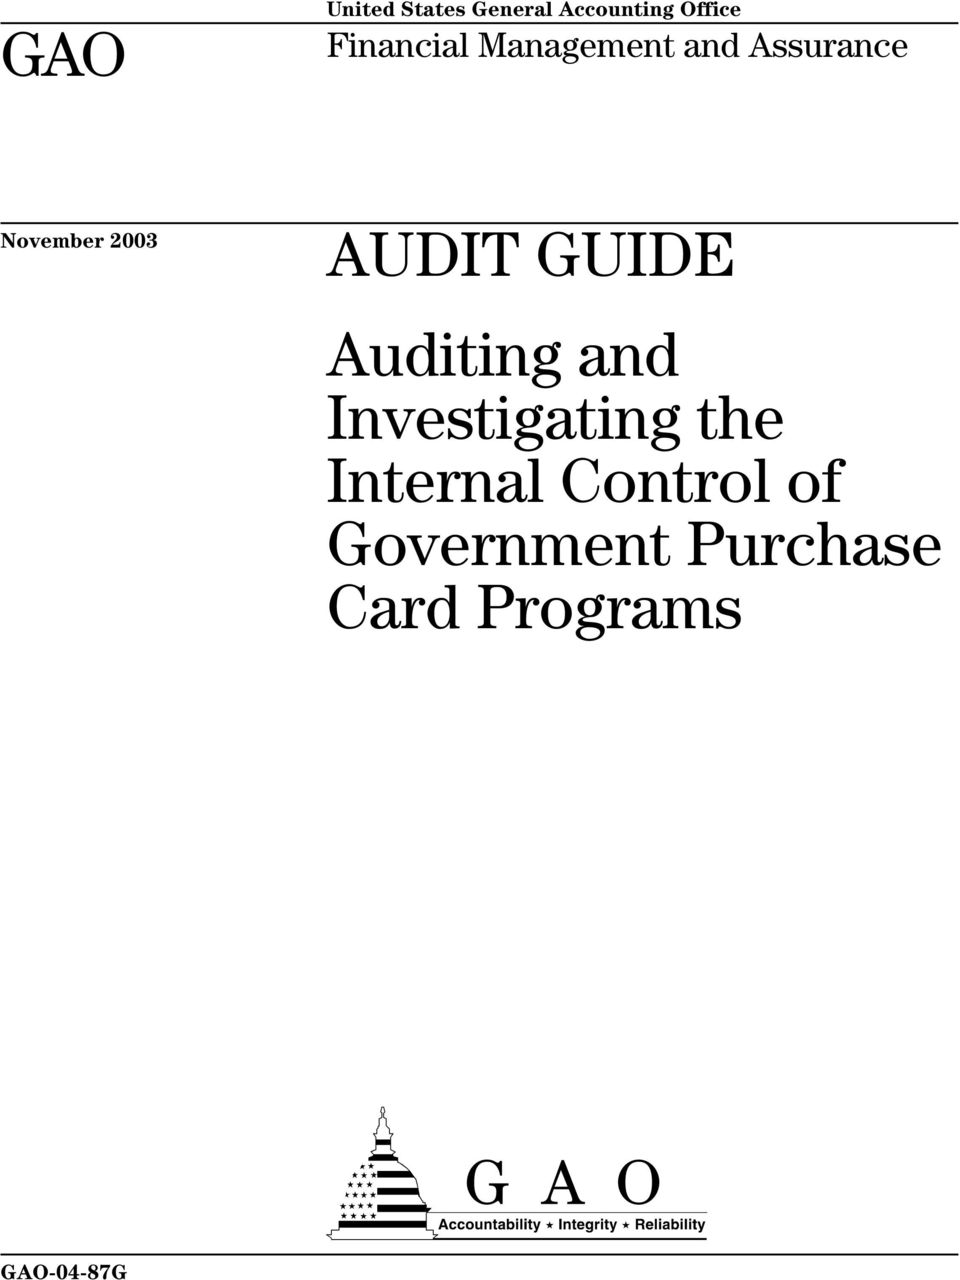 AUDIT GUIDE Auditing and Investigating the